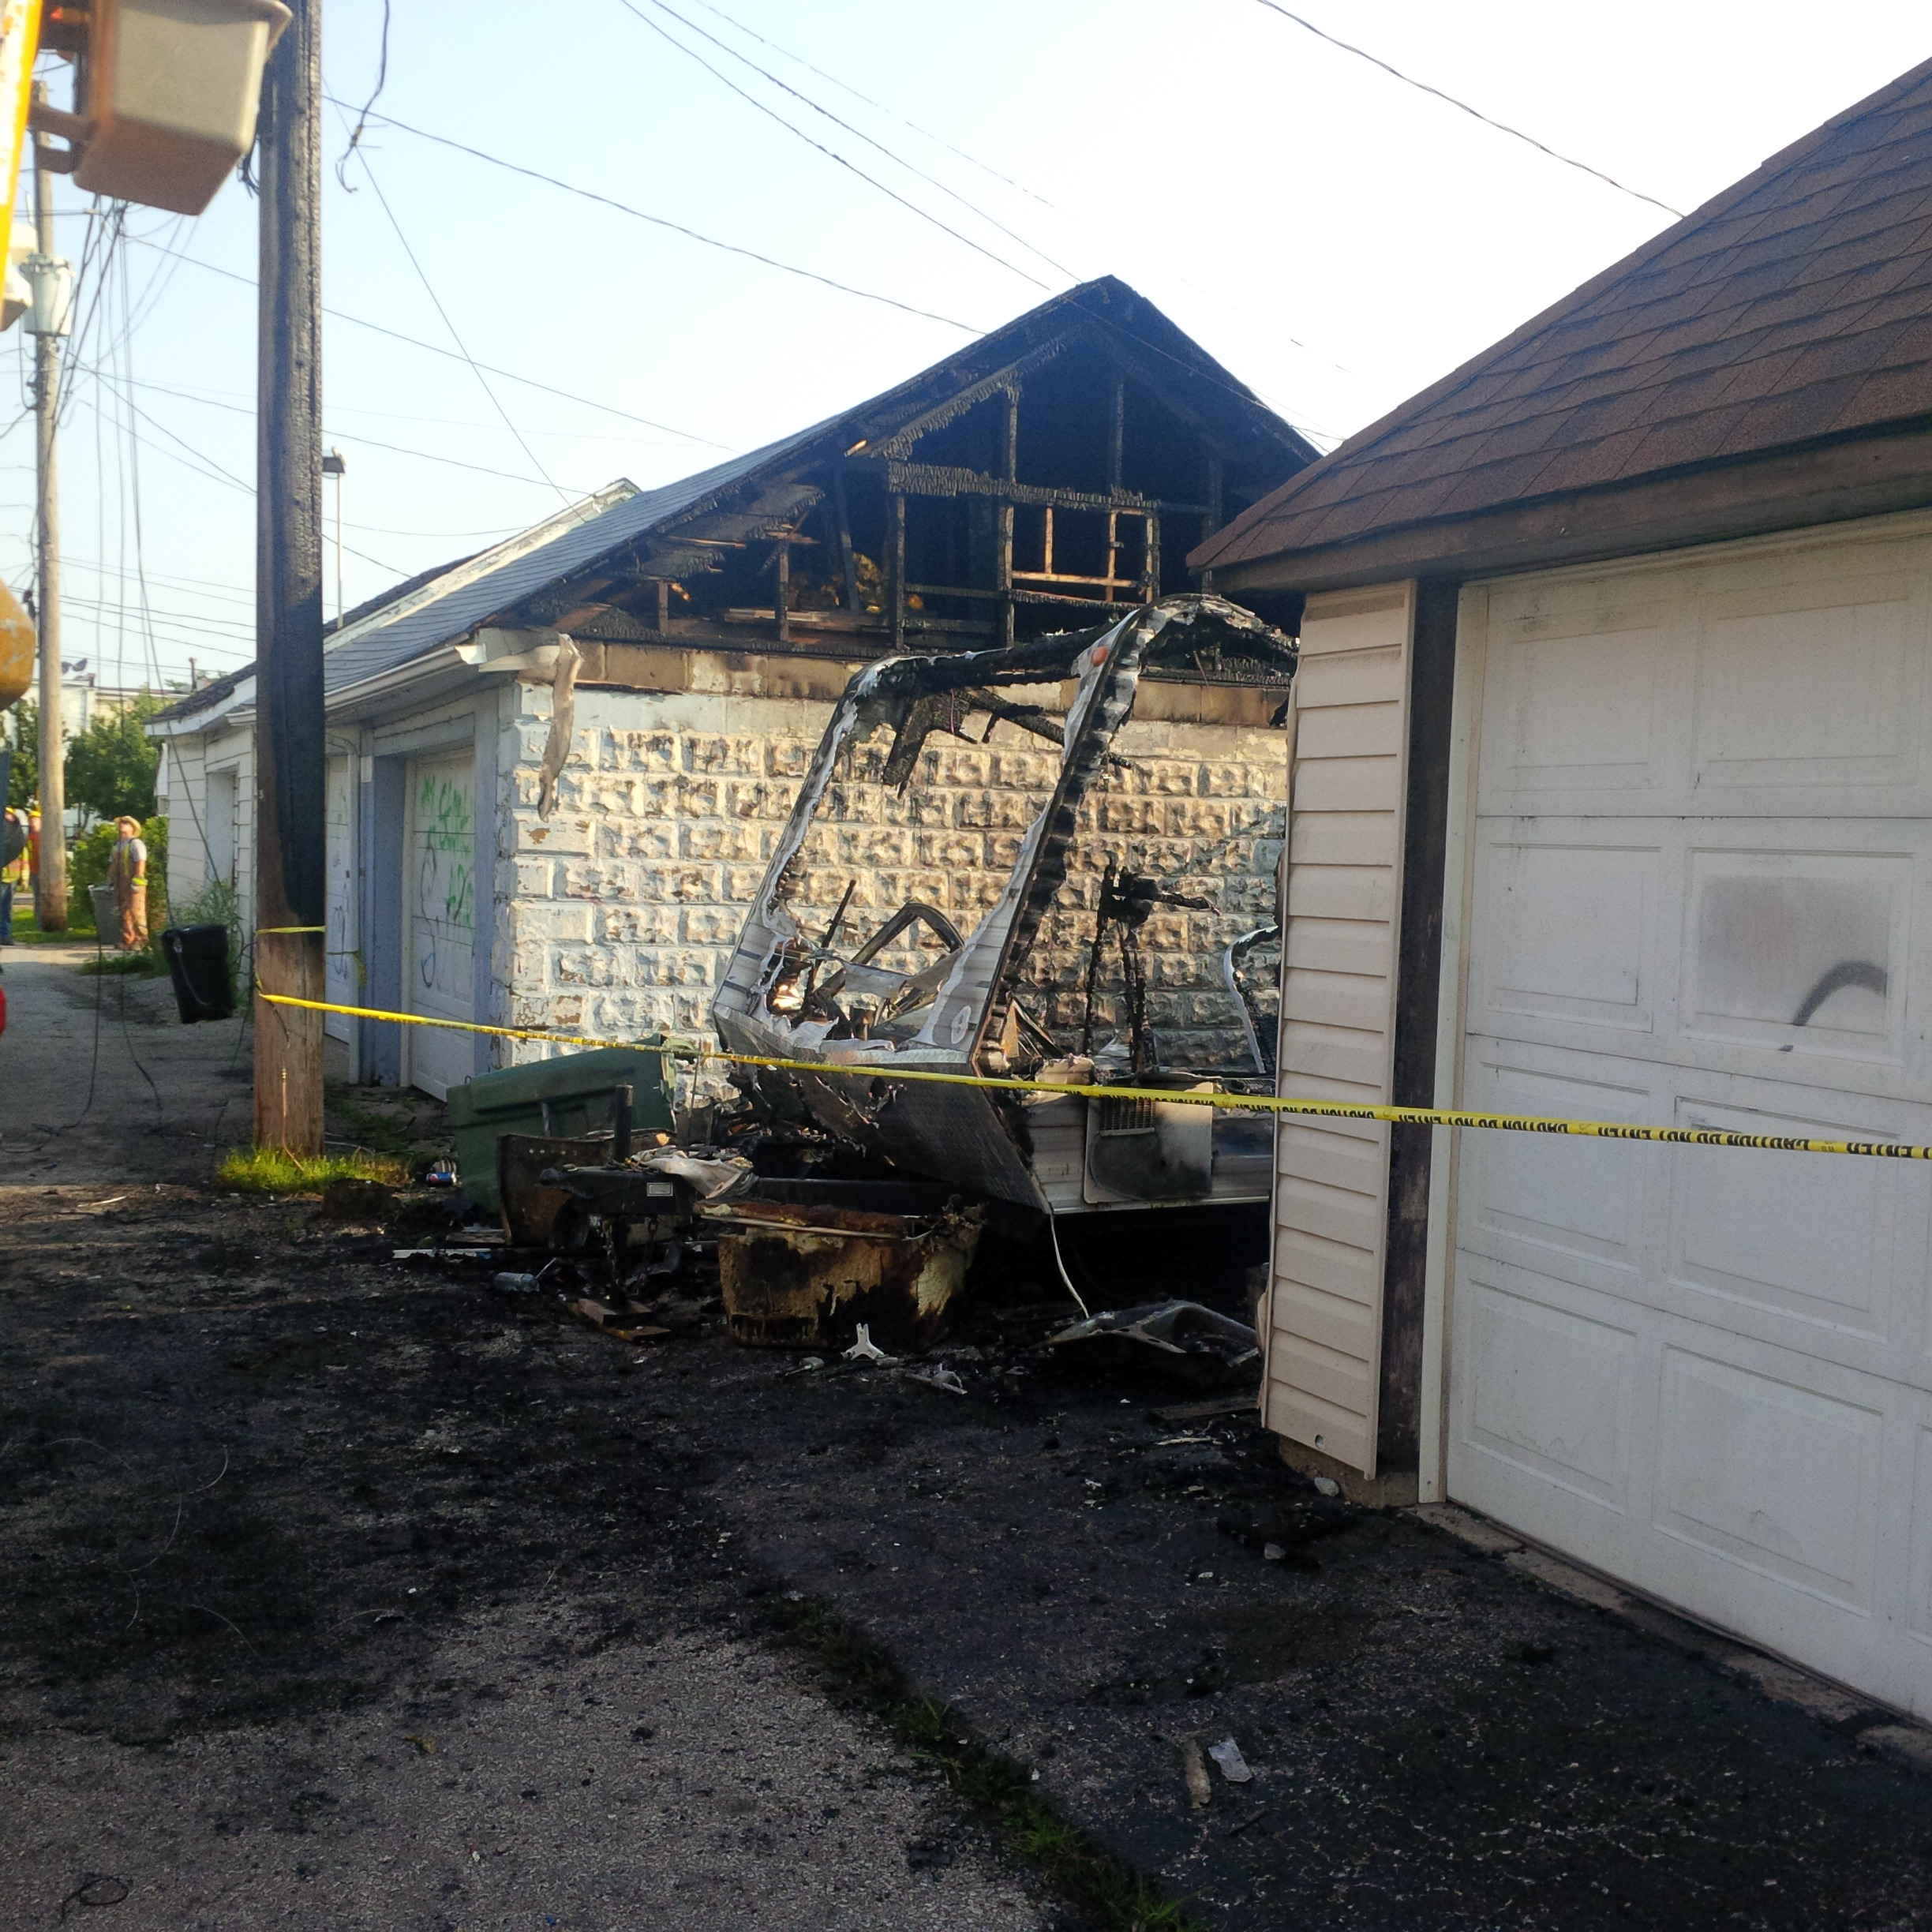 A burnt out recreational trailer Windsor fire crews responded to in the early morning hours on July 29, 2014. (Photo courtesy Lee Tome)